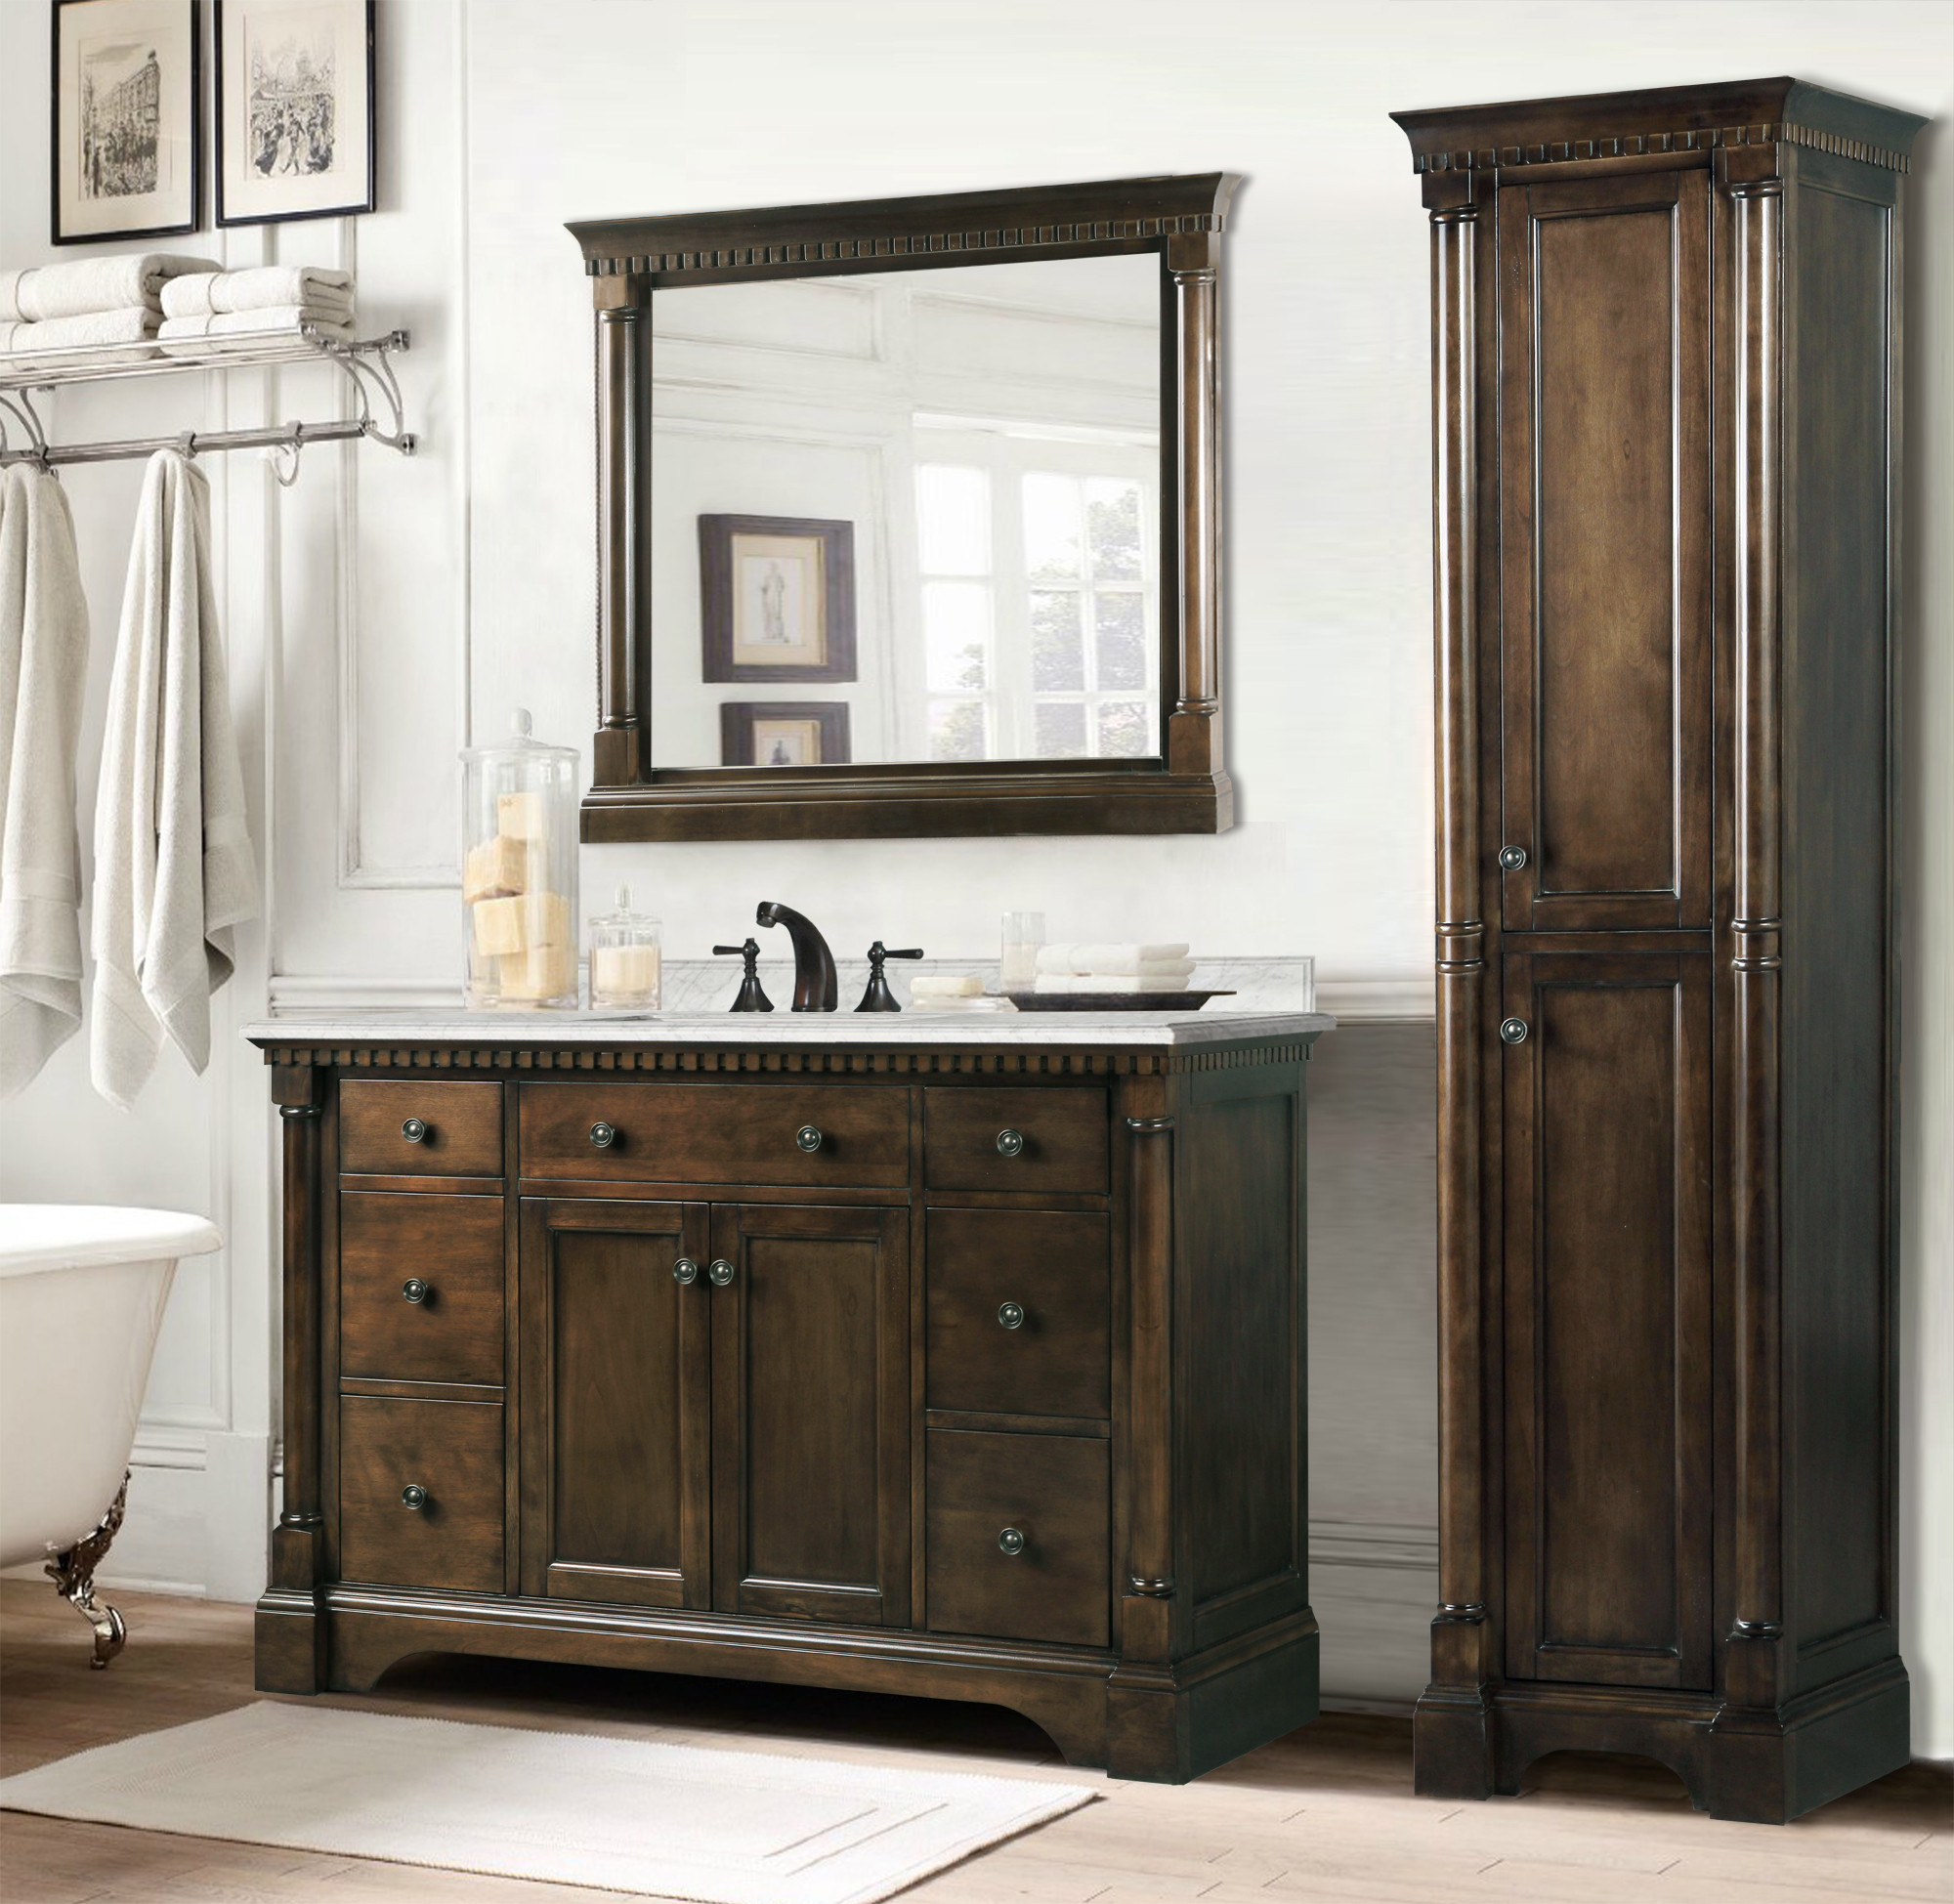 48 inch antique single sink bathroom vanity antique coffee finish clearance at home improvement stores